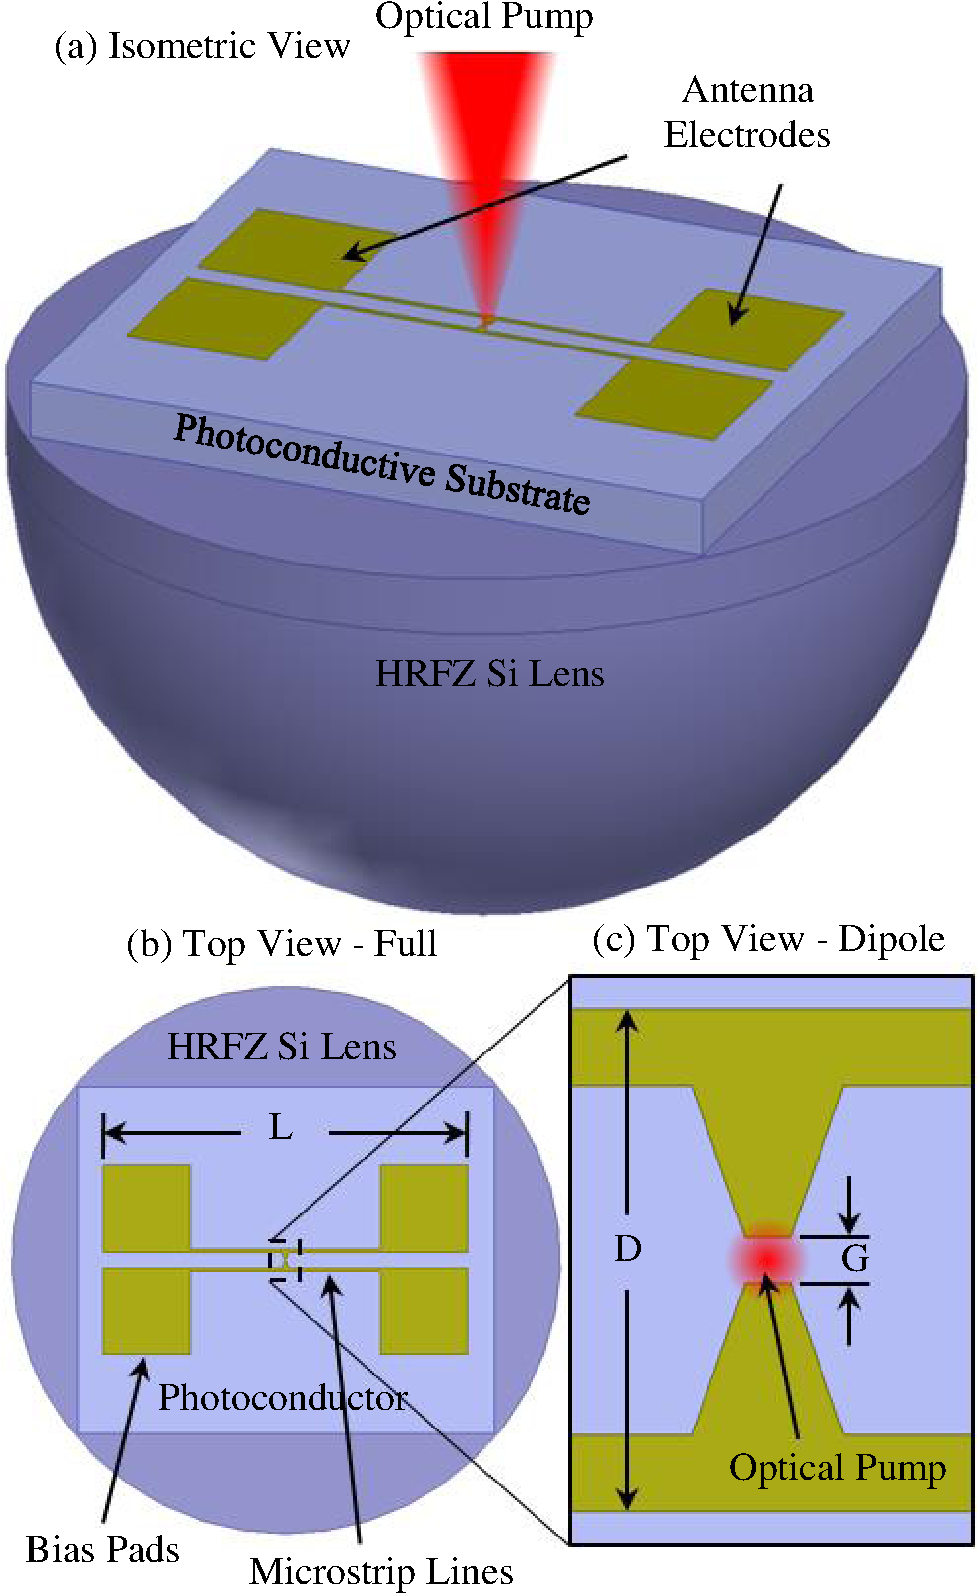 Review Of Terahertz Photoconductive Antenna Technology Wire Schematic B Full Top View The Thz Pca And C Expanded Centrally Located Dipole Structure Only Showing Gap Dimension G Length D